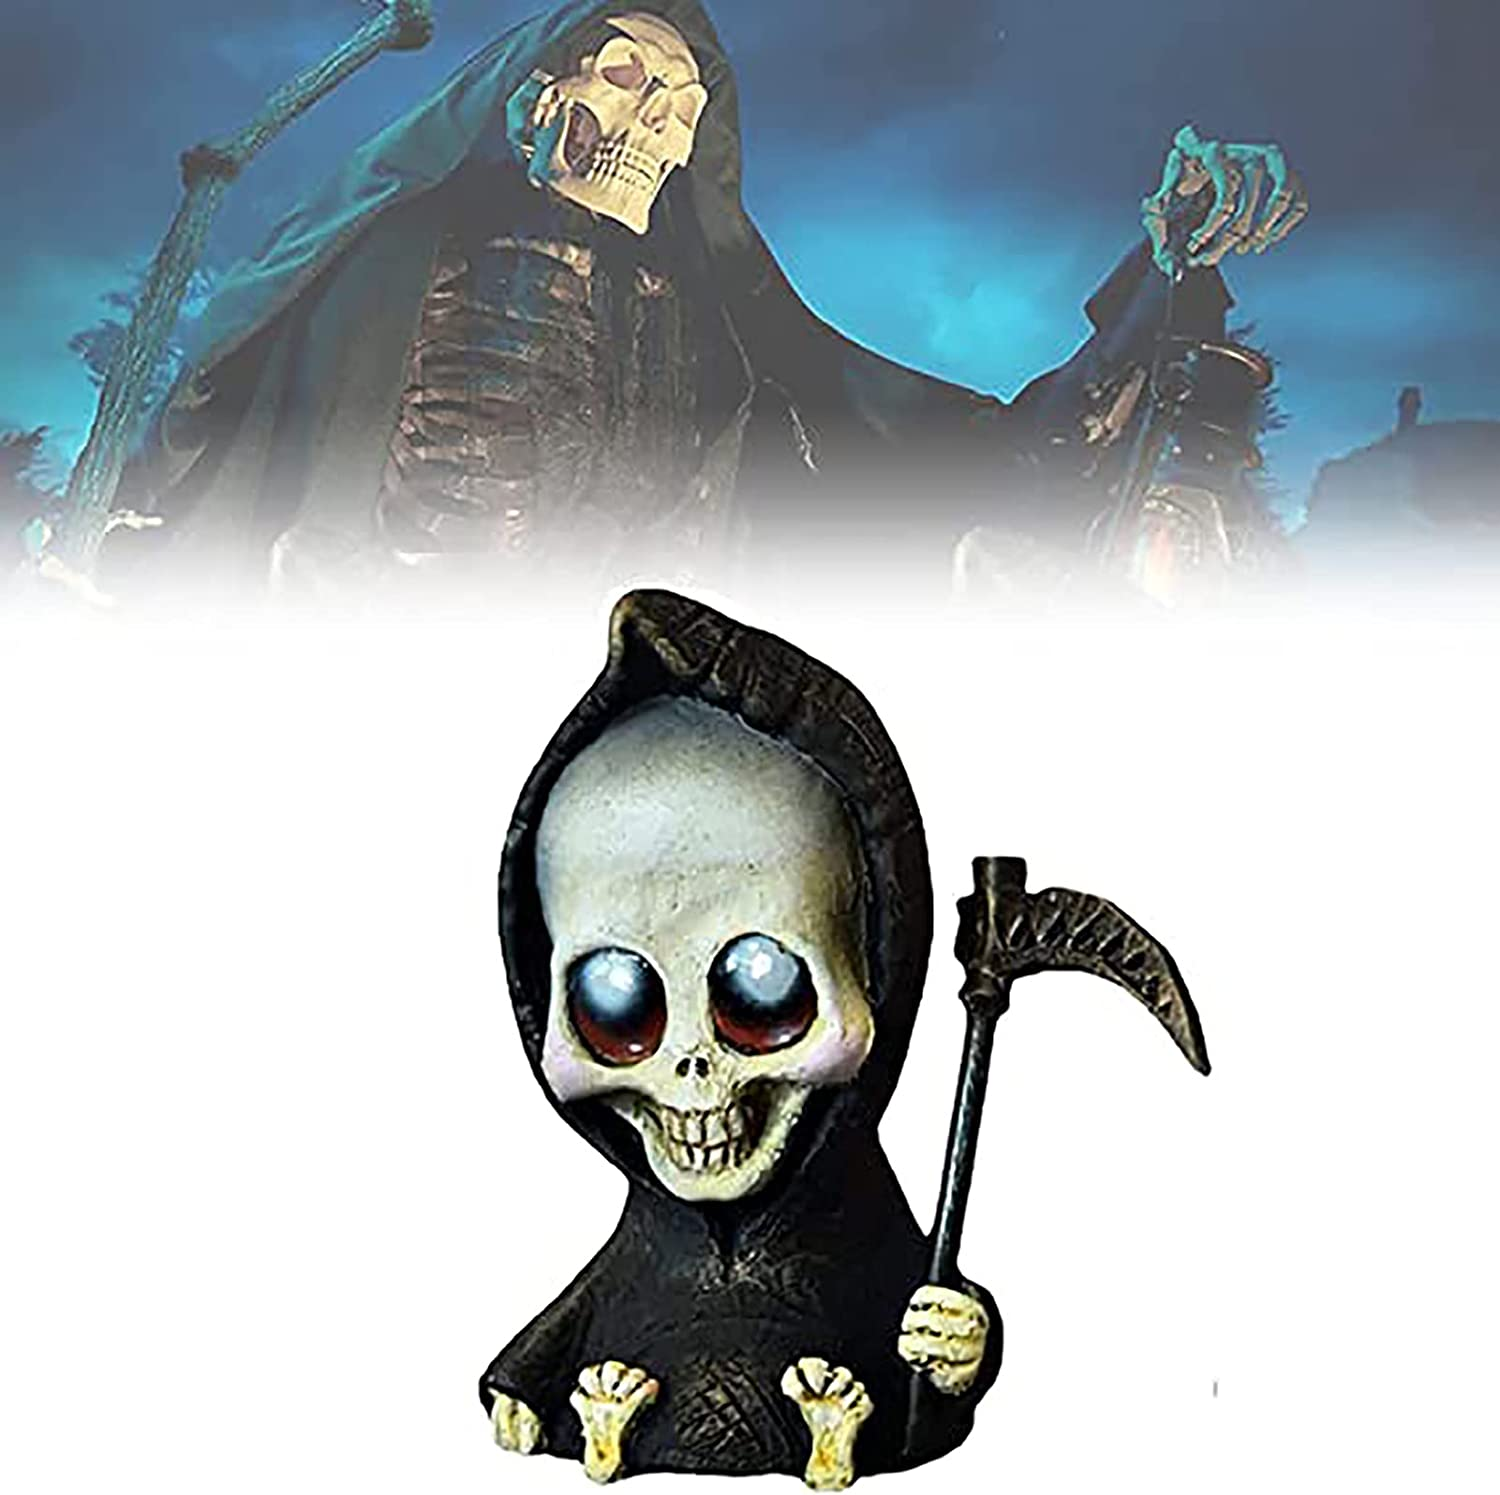 Miniature Grim Reaper excellence Figurines Figurine Scythe with Cheap mail order specialty store Halloween